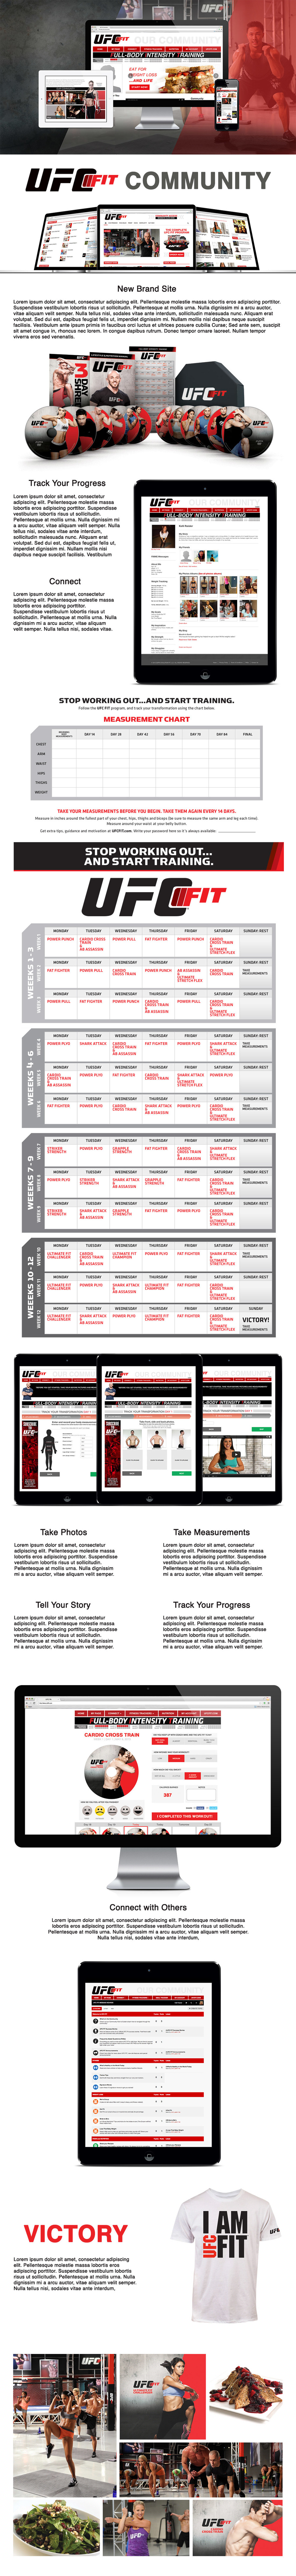 ufc-Fit-Comm_Full-page.jpg